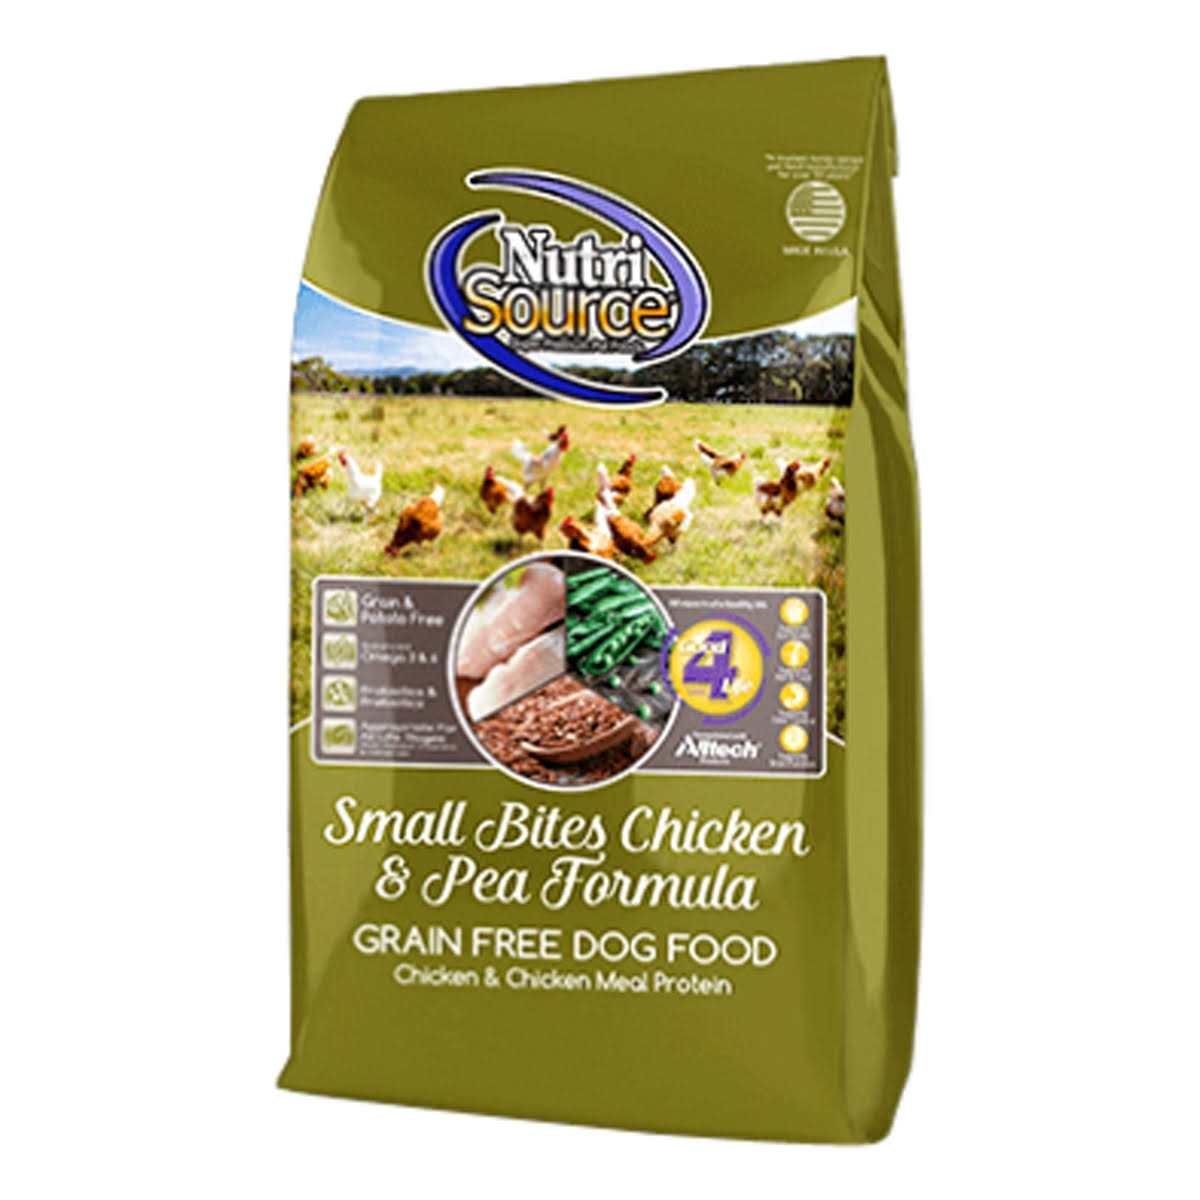 Nutrisource Grain Free Dog Food - Chicken, Small Breed